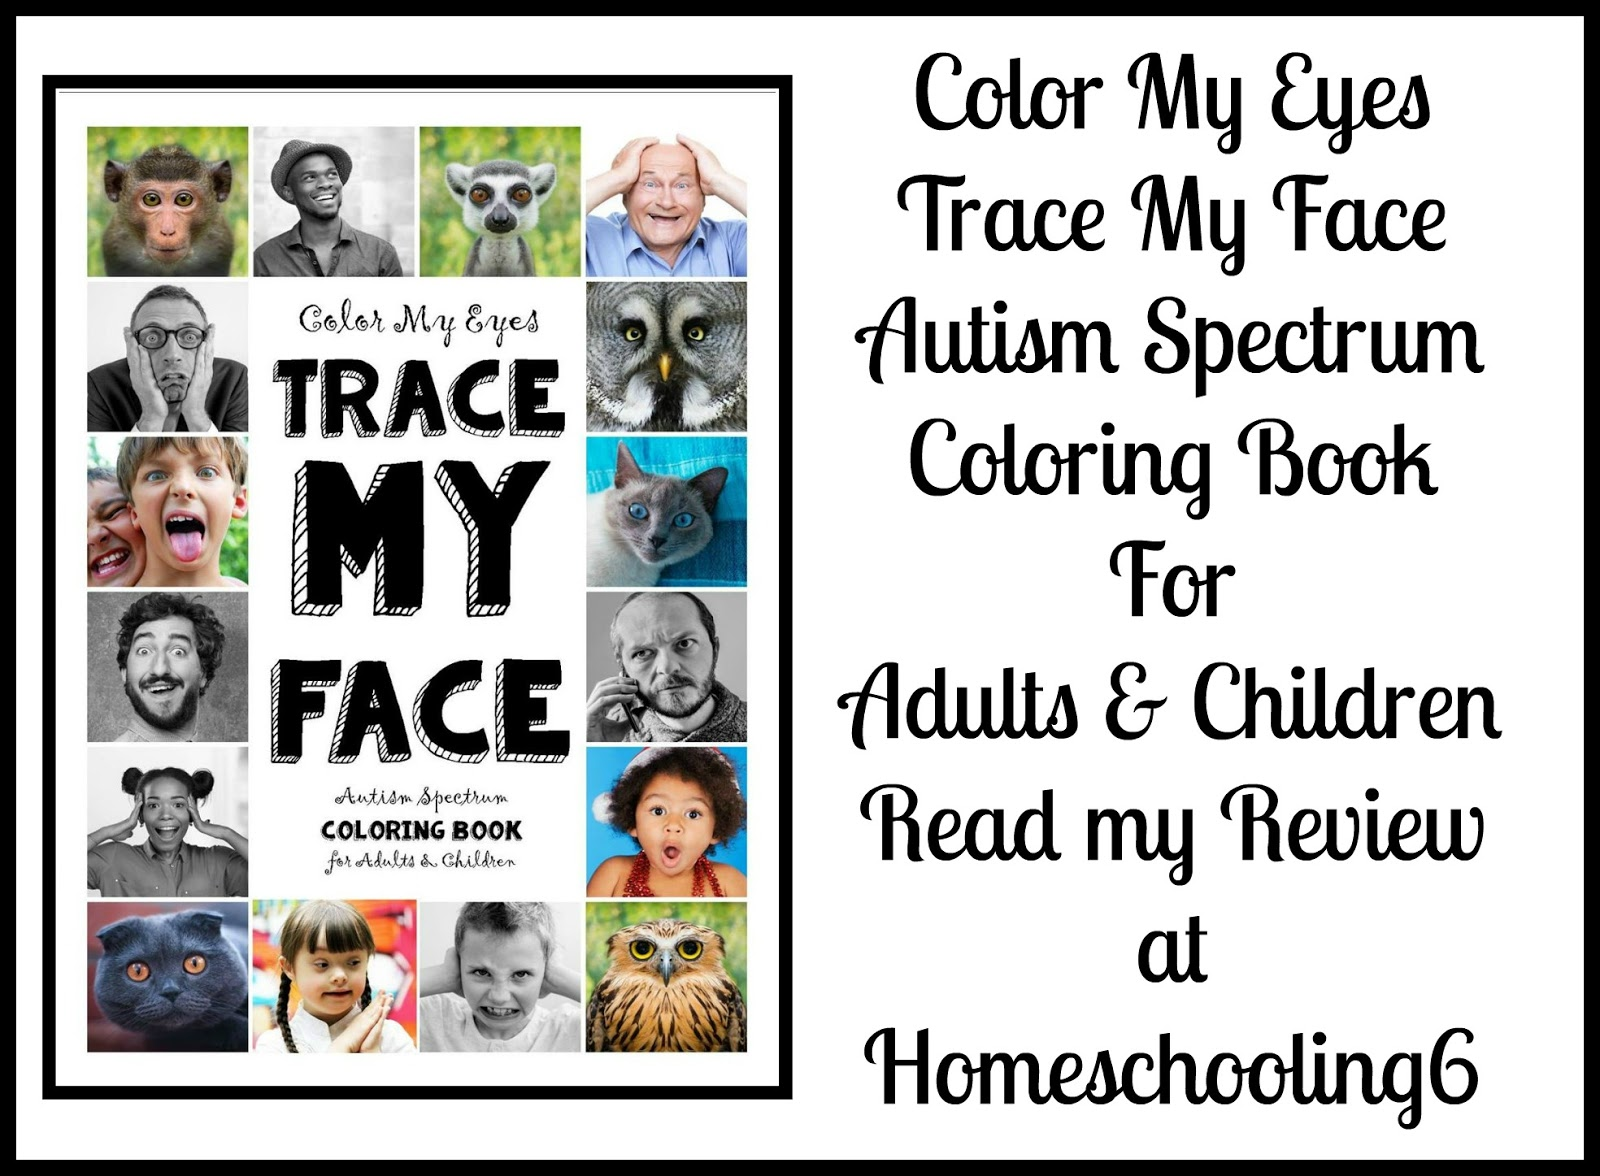 Color My Eyes Trace My Face Autism Spectrum Coloring Book